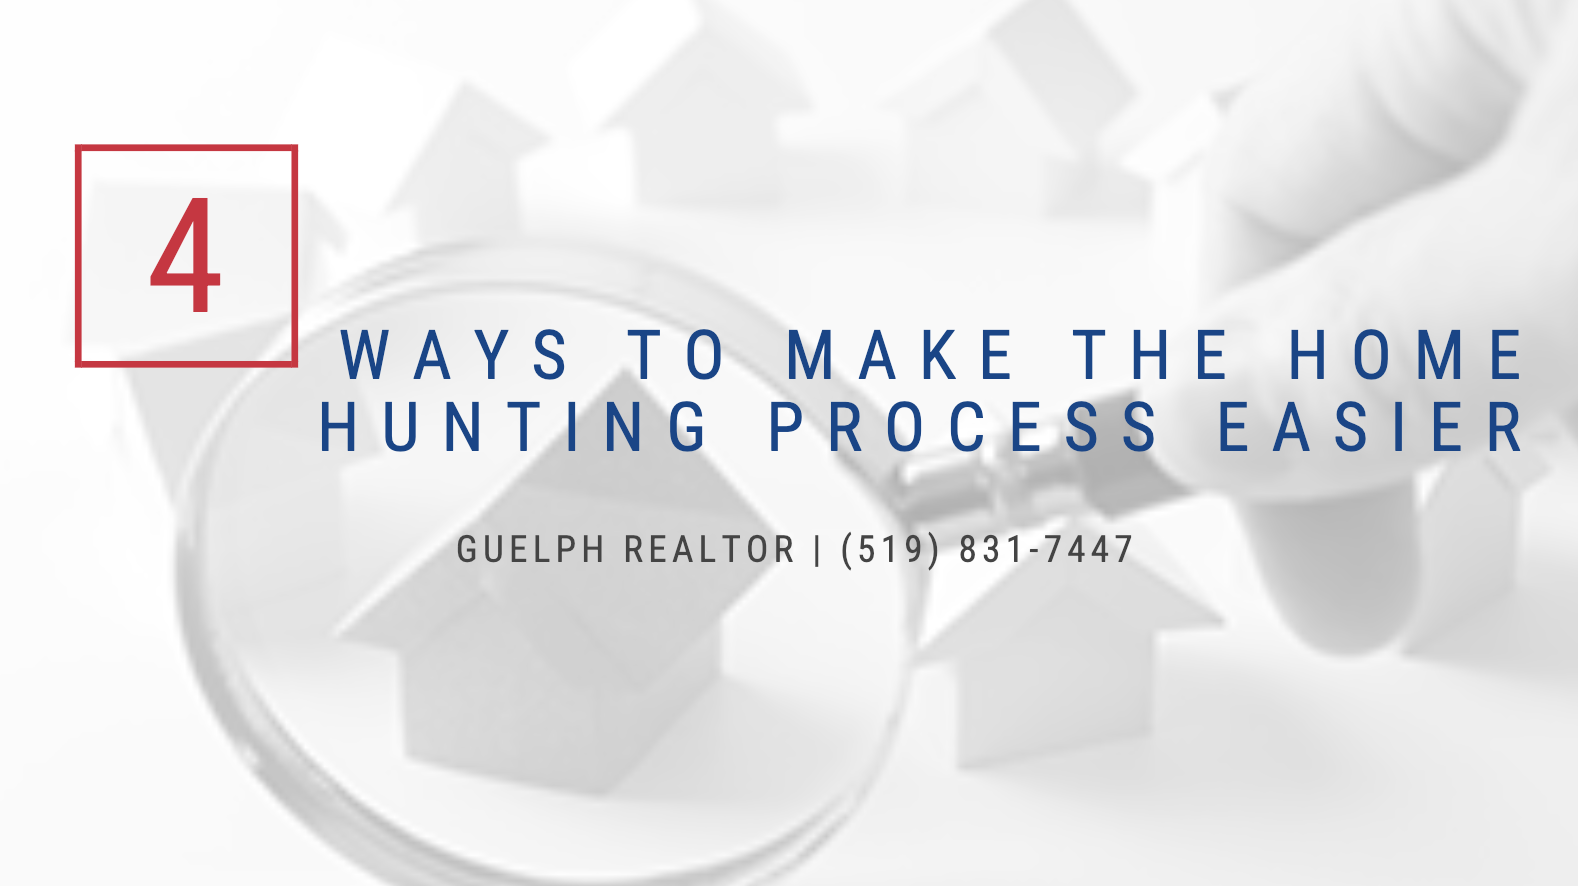 Guelph Realtor - 4 Ways to Make the Home Hunting Process Easier